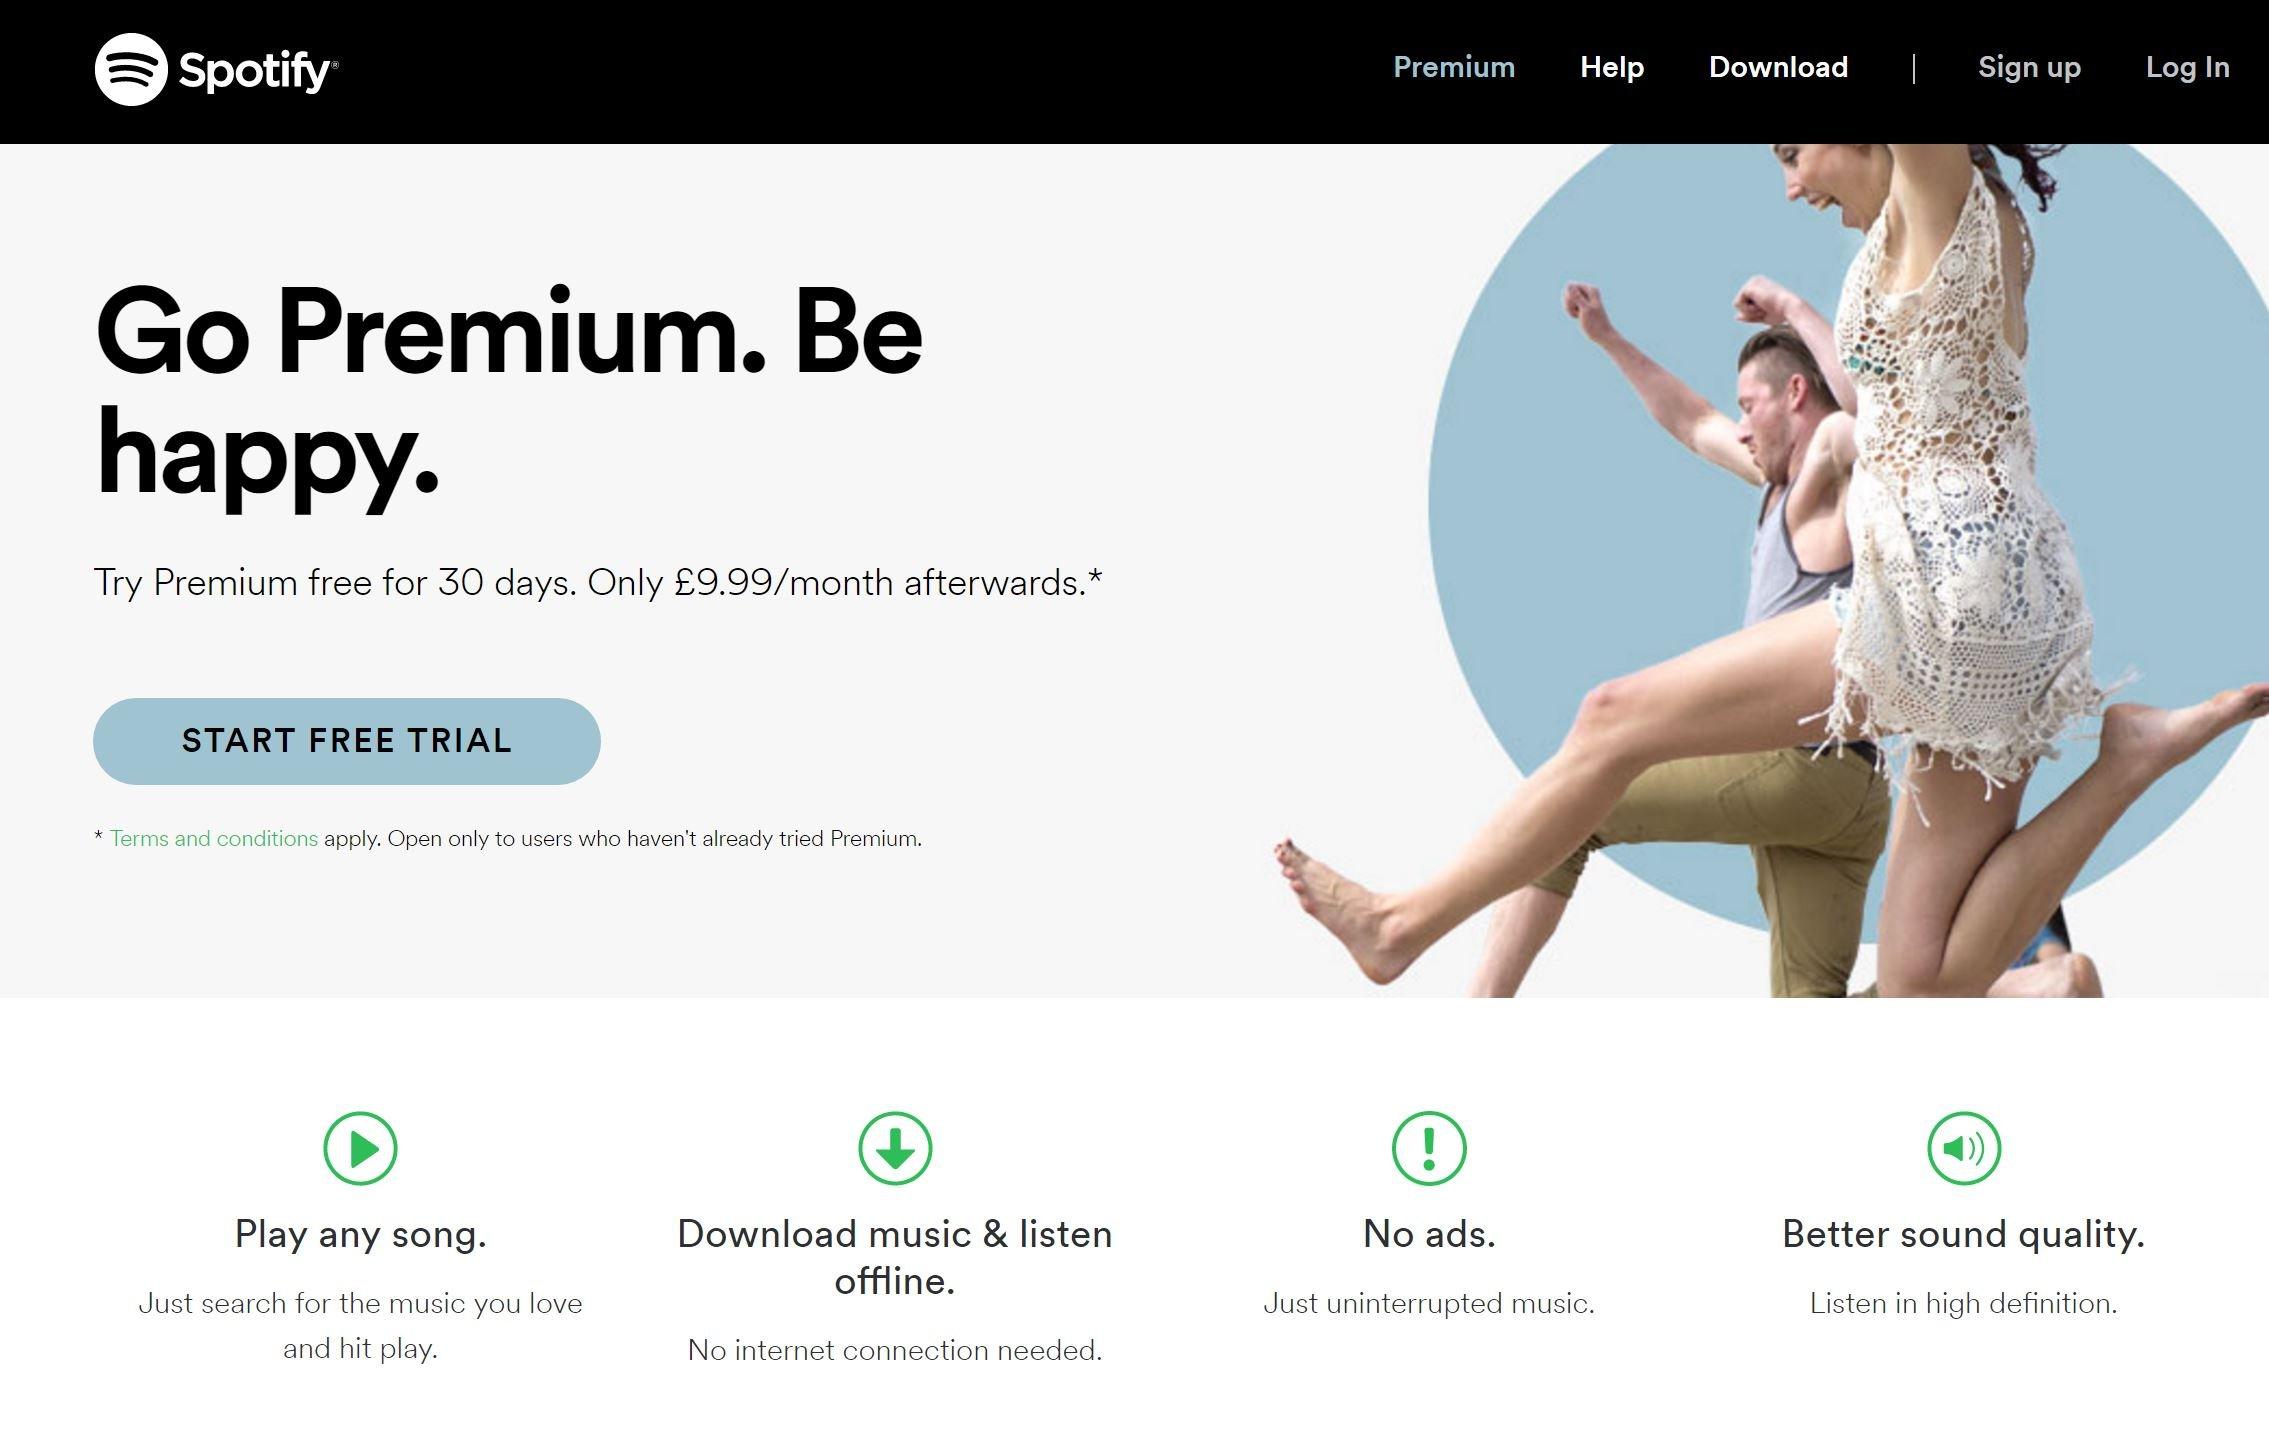 Image of Spotify.com landing page with free trial offer